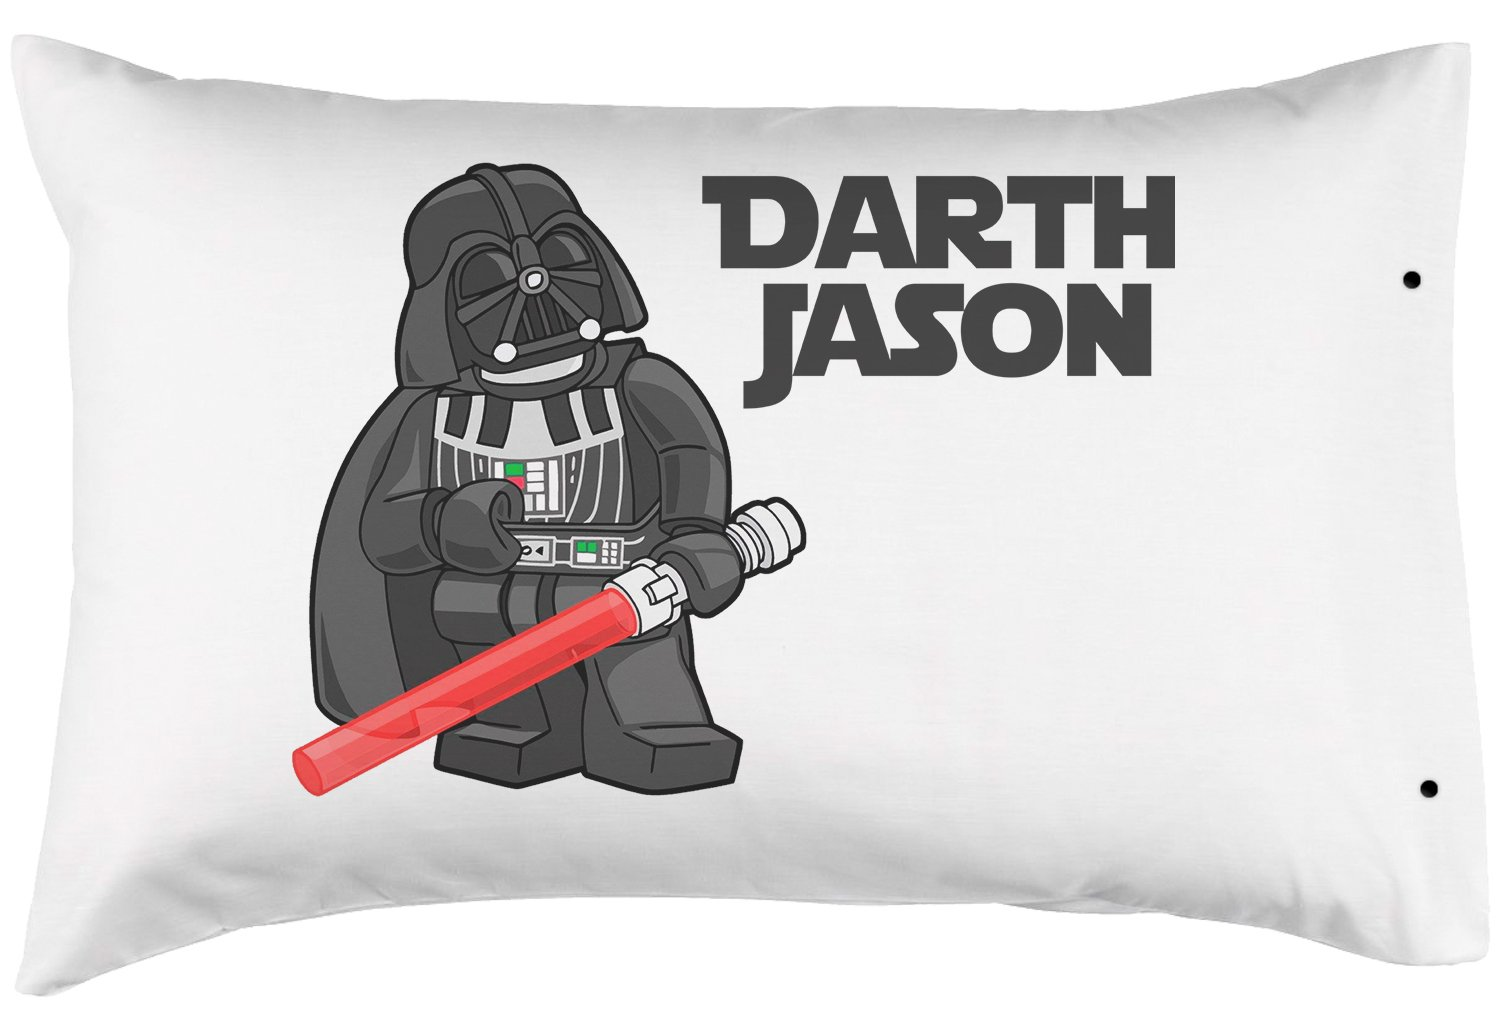 PersonalizedPillowcase Customized Darth Vader Lego Man Pillowcase, Fun Star Wars theme - 100% Double Brushed Microfiber Snap Enclosure - 20''x30'' by PersonalizedPillowcase